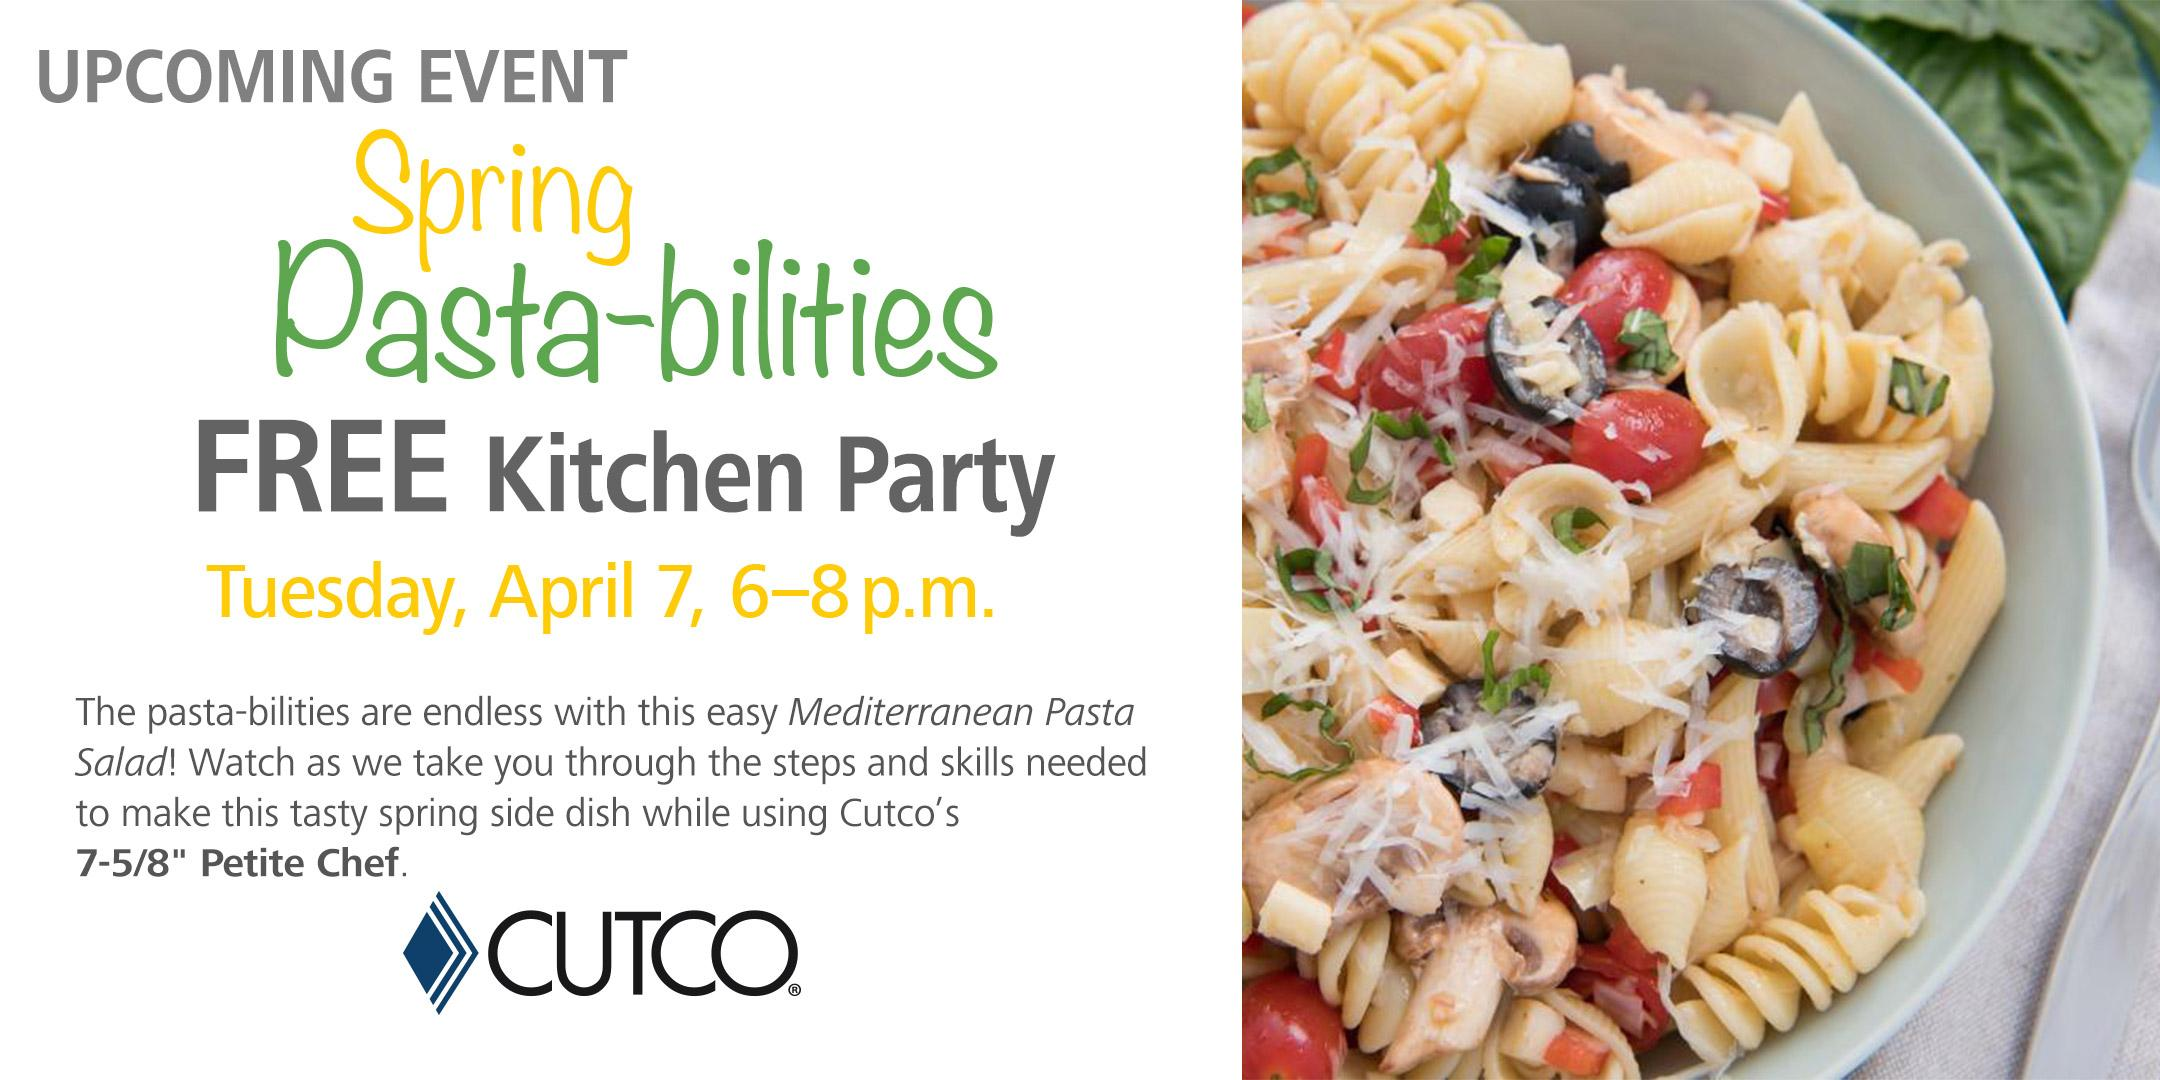 FREE Cooking Class: Spring Pasta-bilities